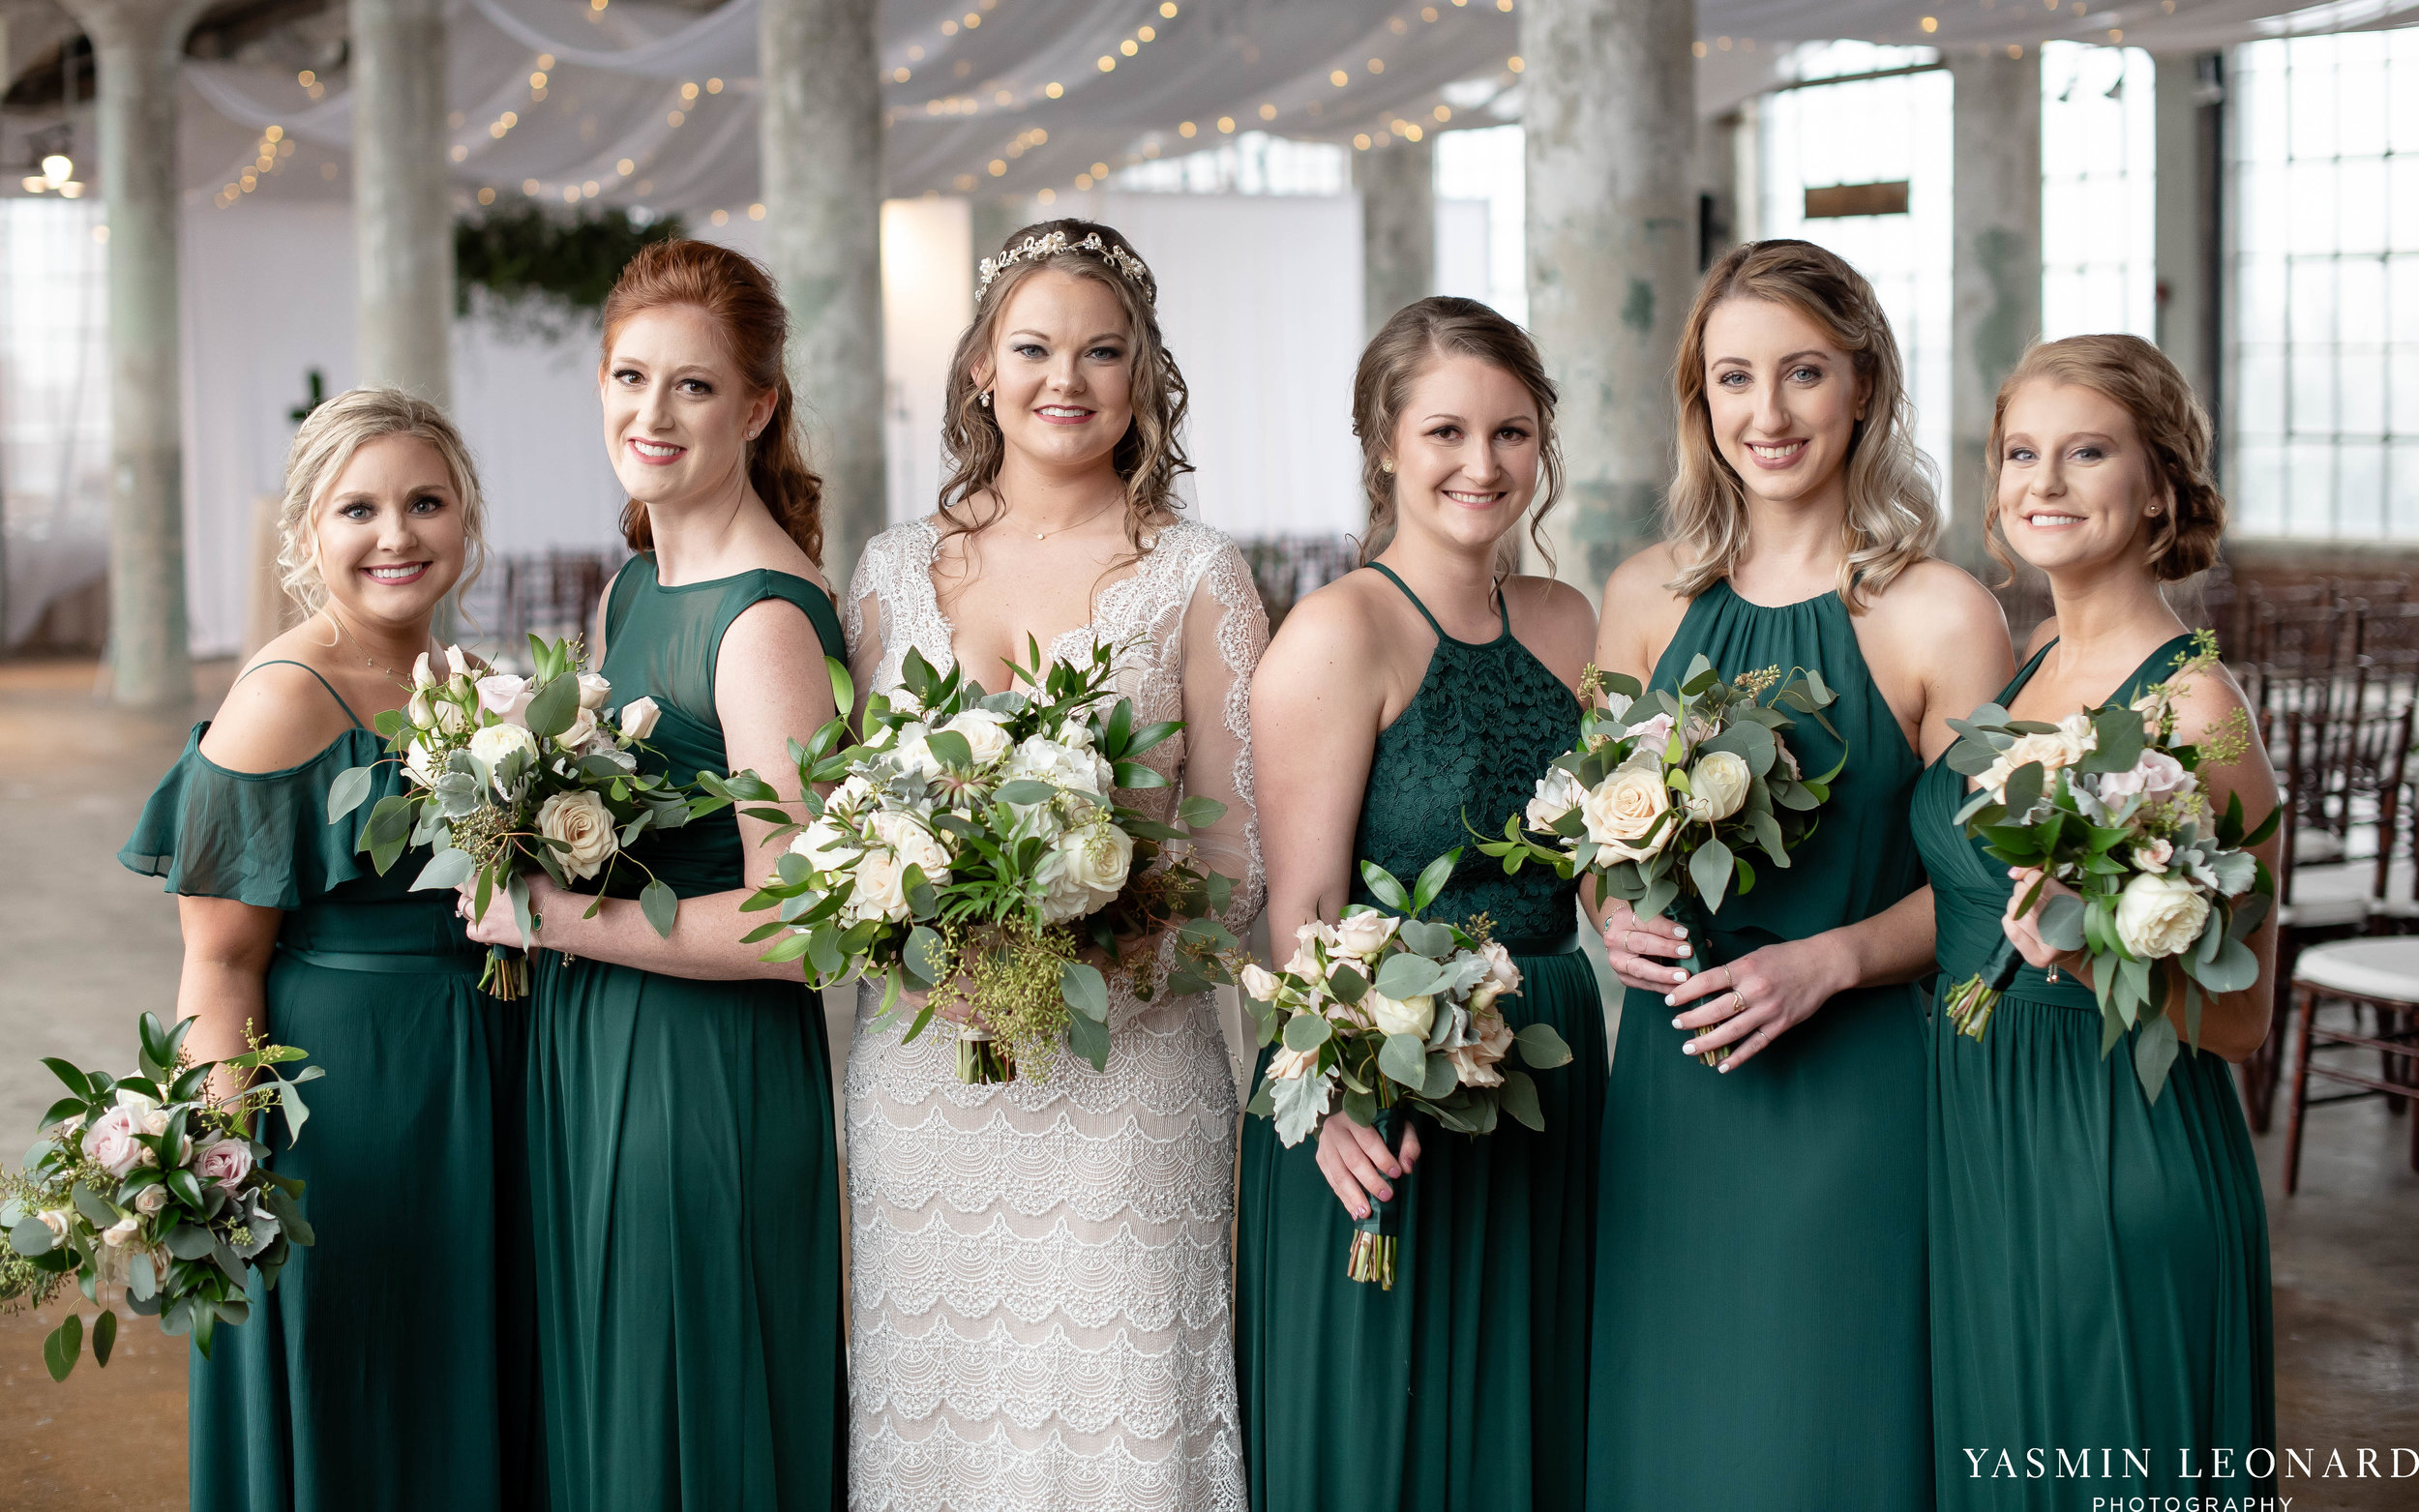 The Lofts at Union Square - Unions - High Point Weddings - NC Weddings - NC Wedding Photographer - Yasmin Leonard Photography - Just Priceless - Green Pink and Gold Wedding - Elegant Wedding-17.jpg